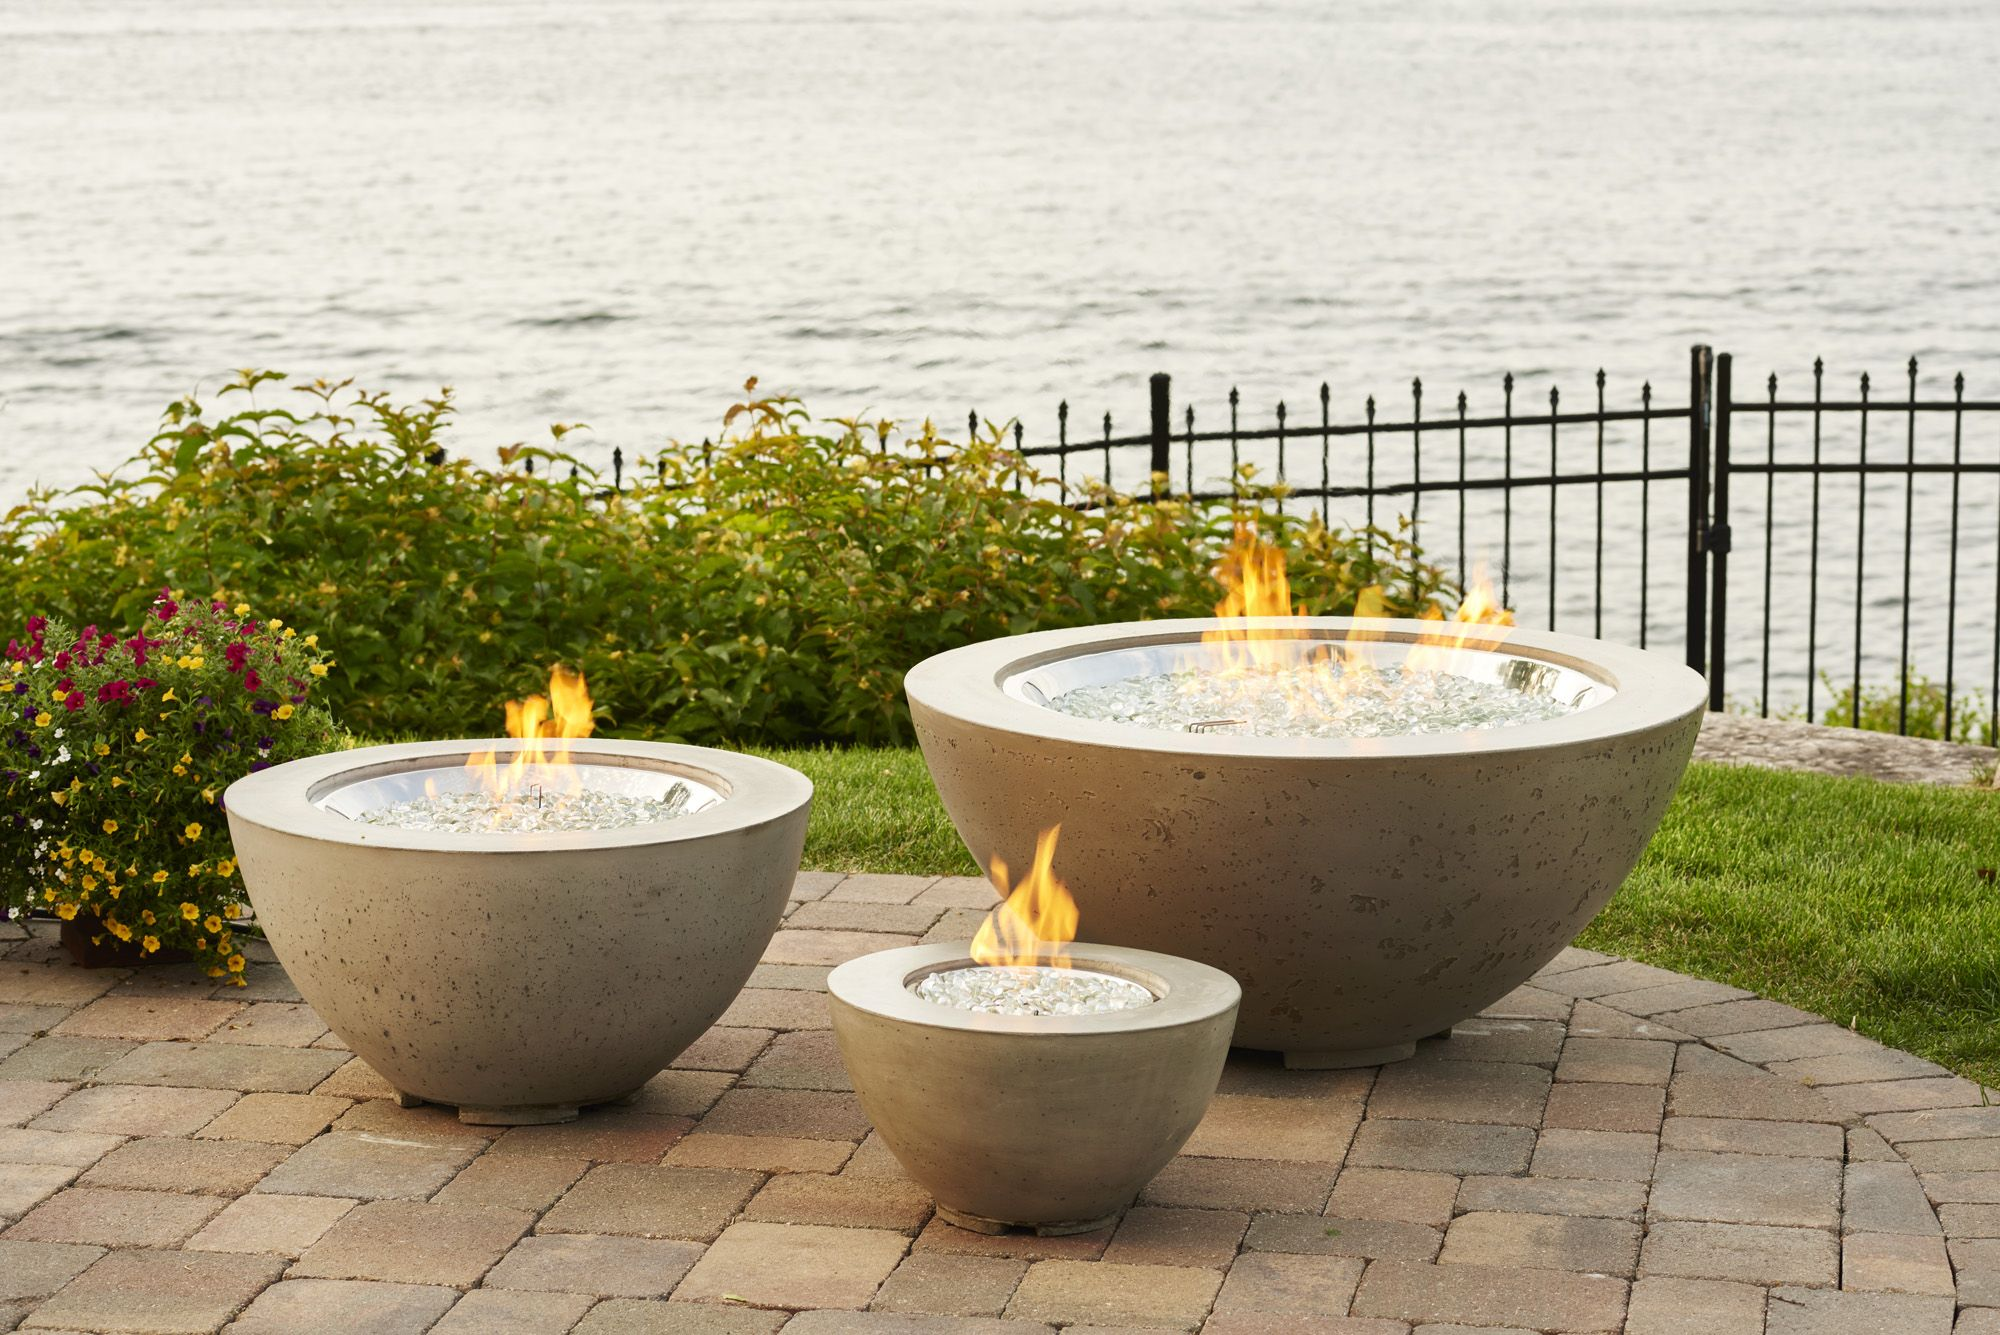 cove fire bowls outdoor kitchen ideas pinterest fire bowls